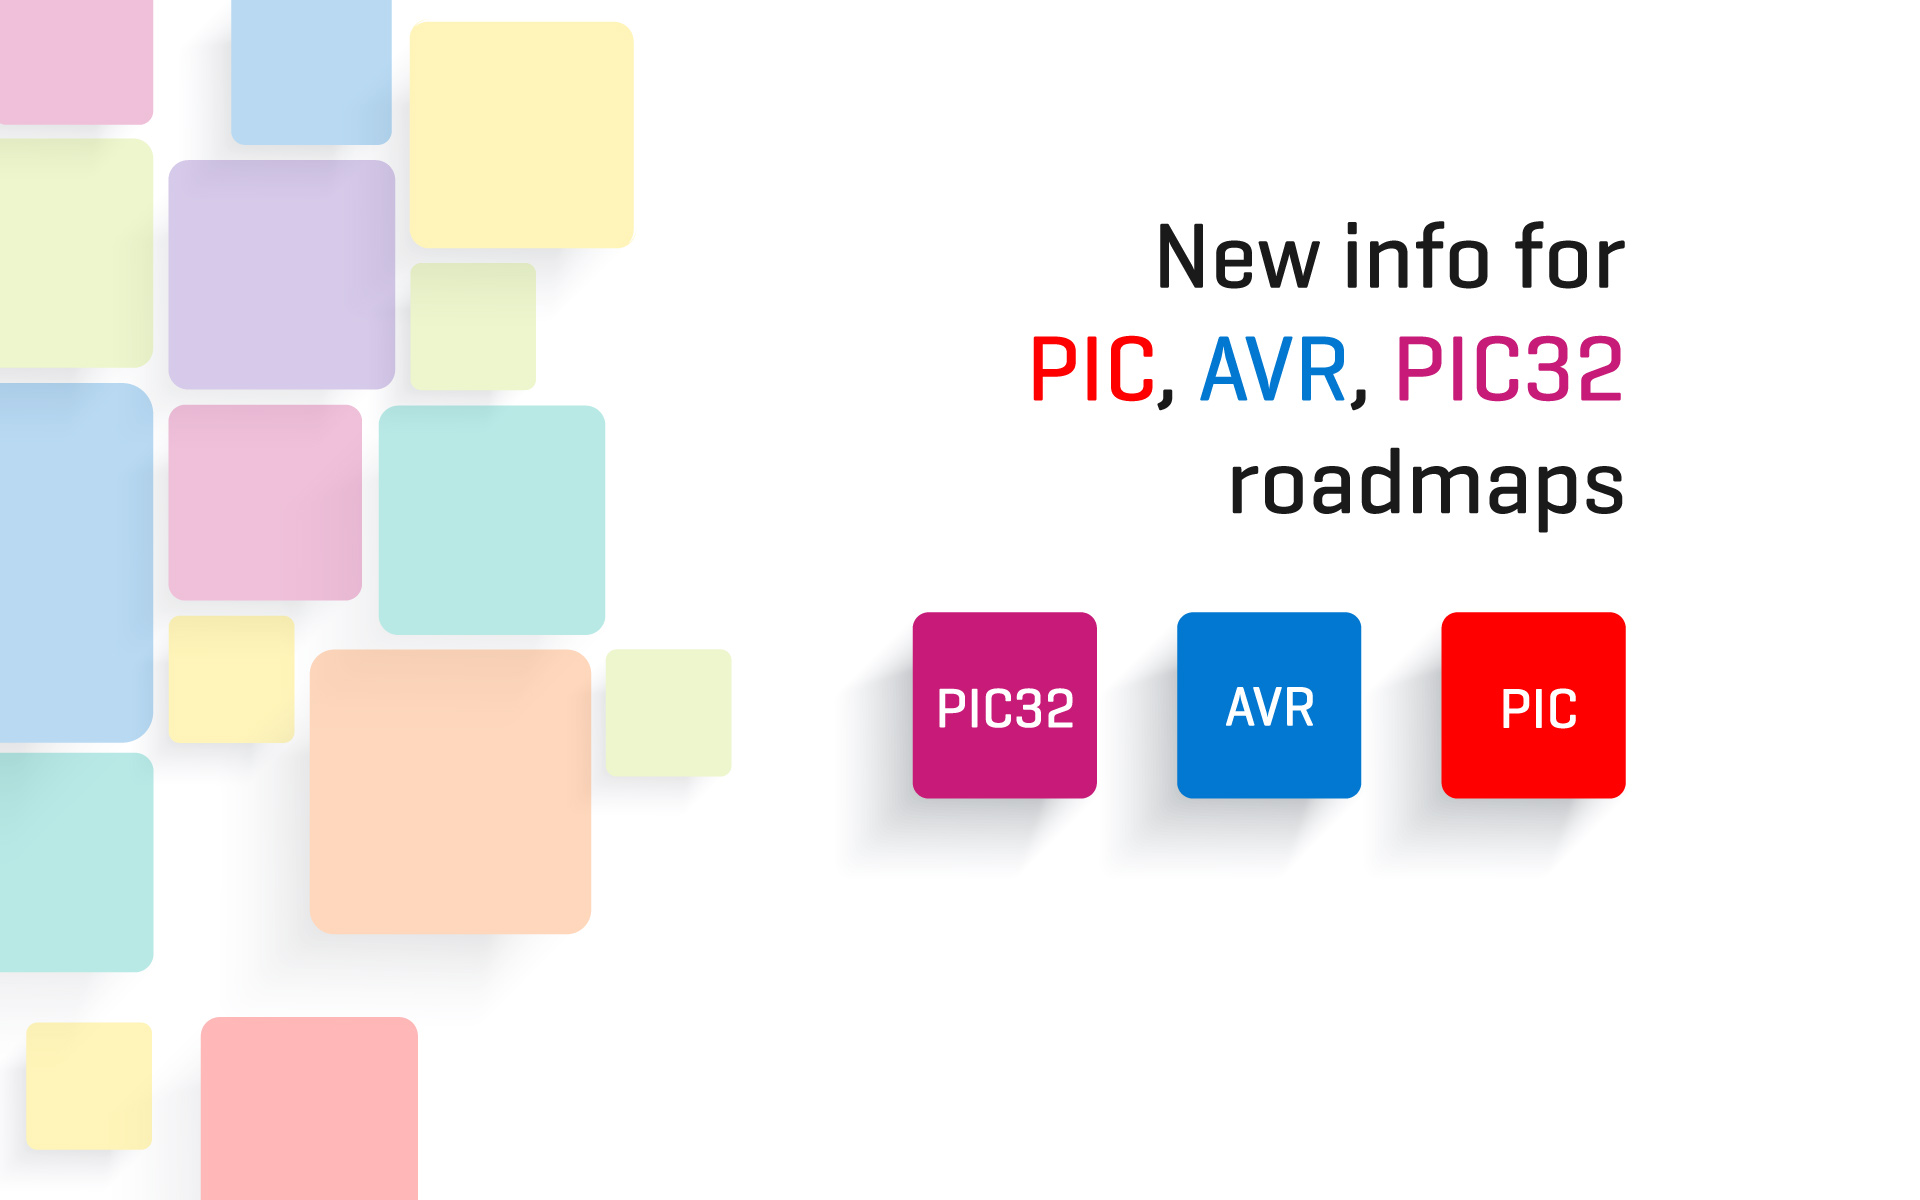 Roadmap update for AVR, PIC32 and PIC compilers